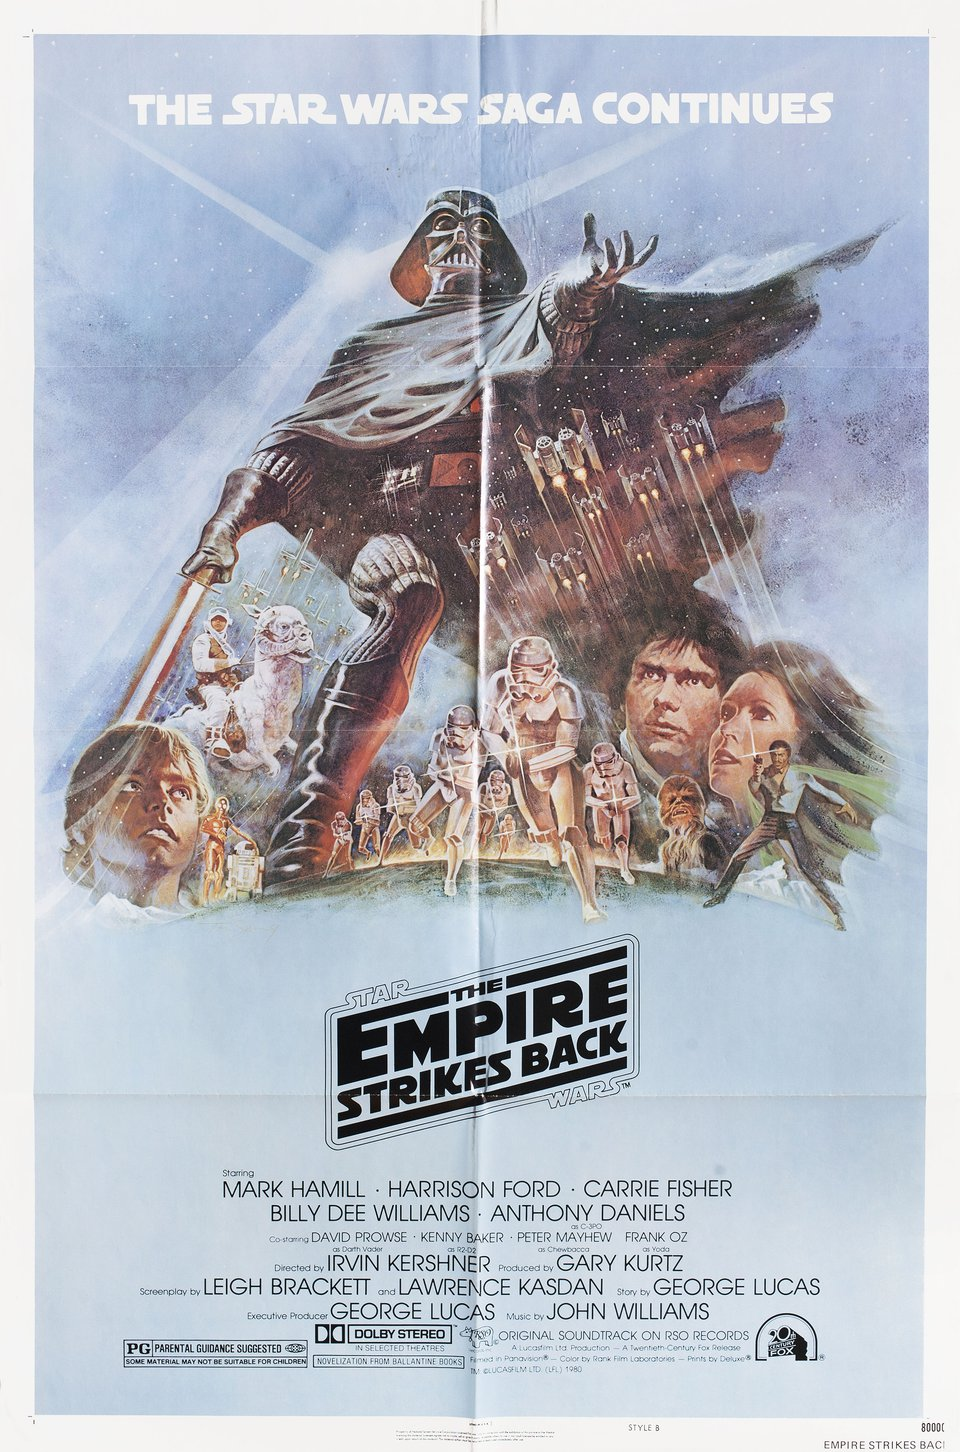 The Empire Strikes Back 1980 U.S. One Sheet Poster